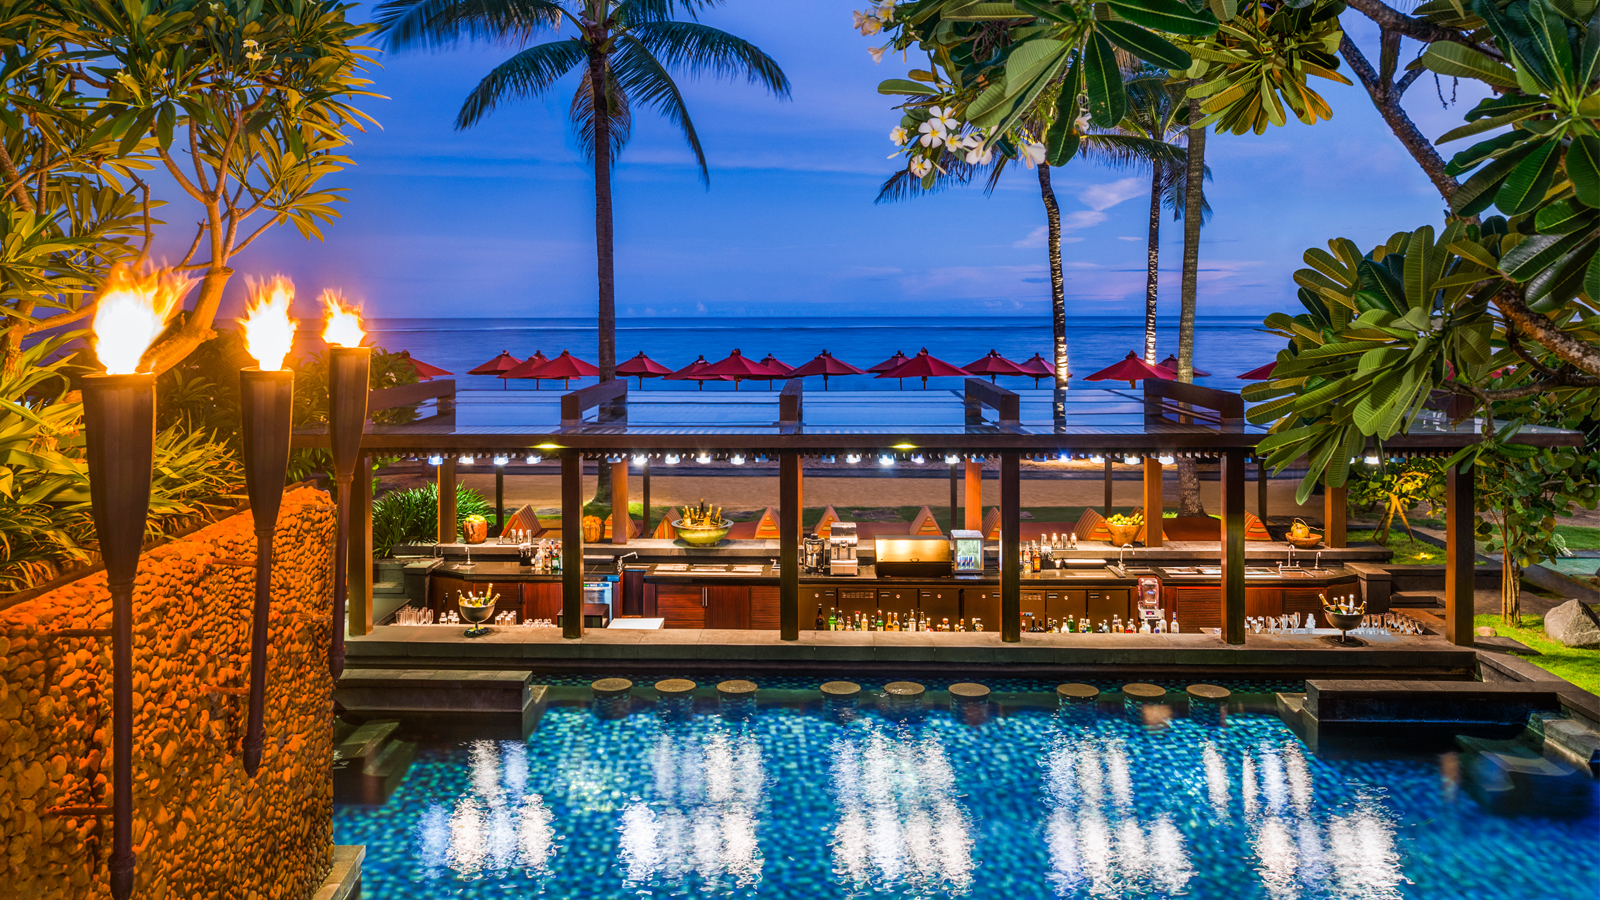 Best Beach Bar In Bali Vista Bar At St Regis Bali